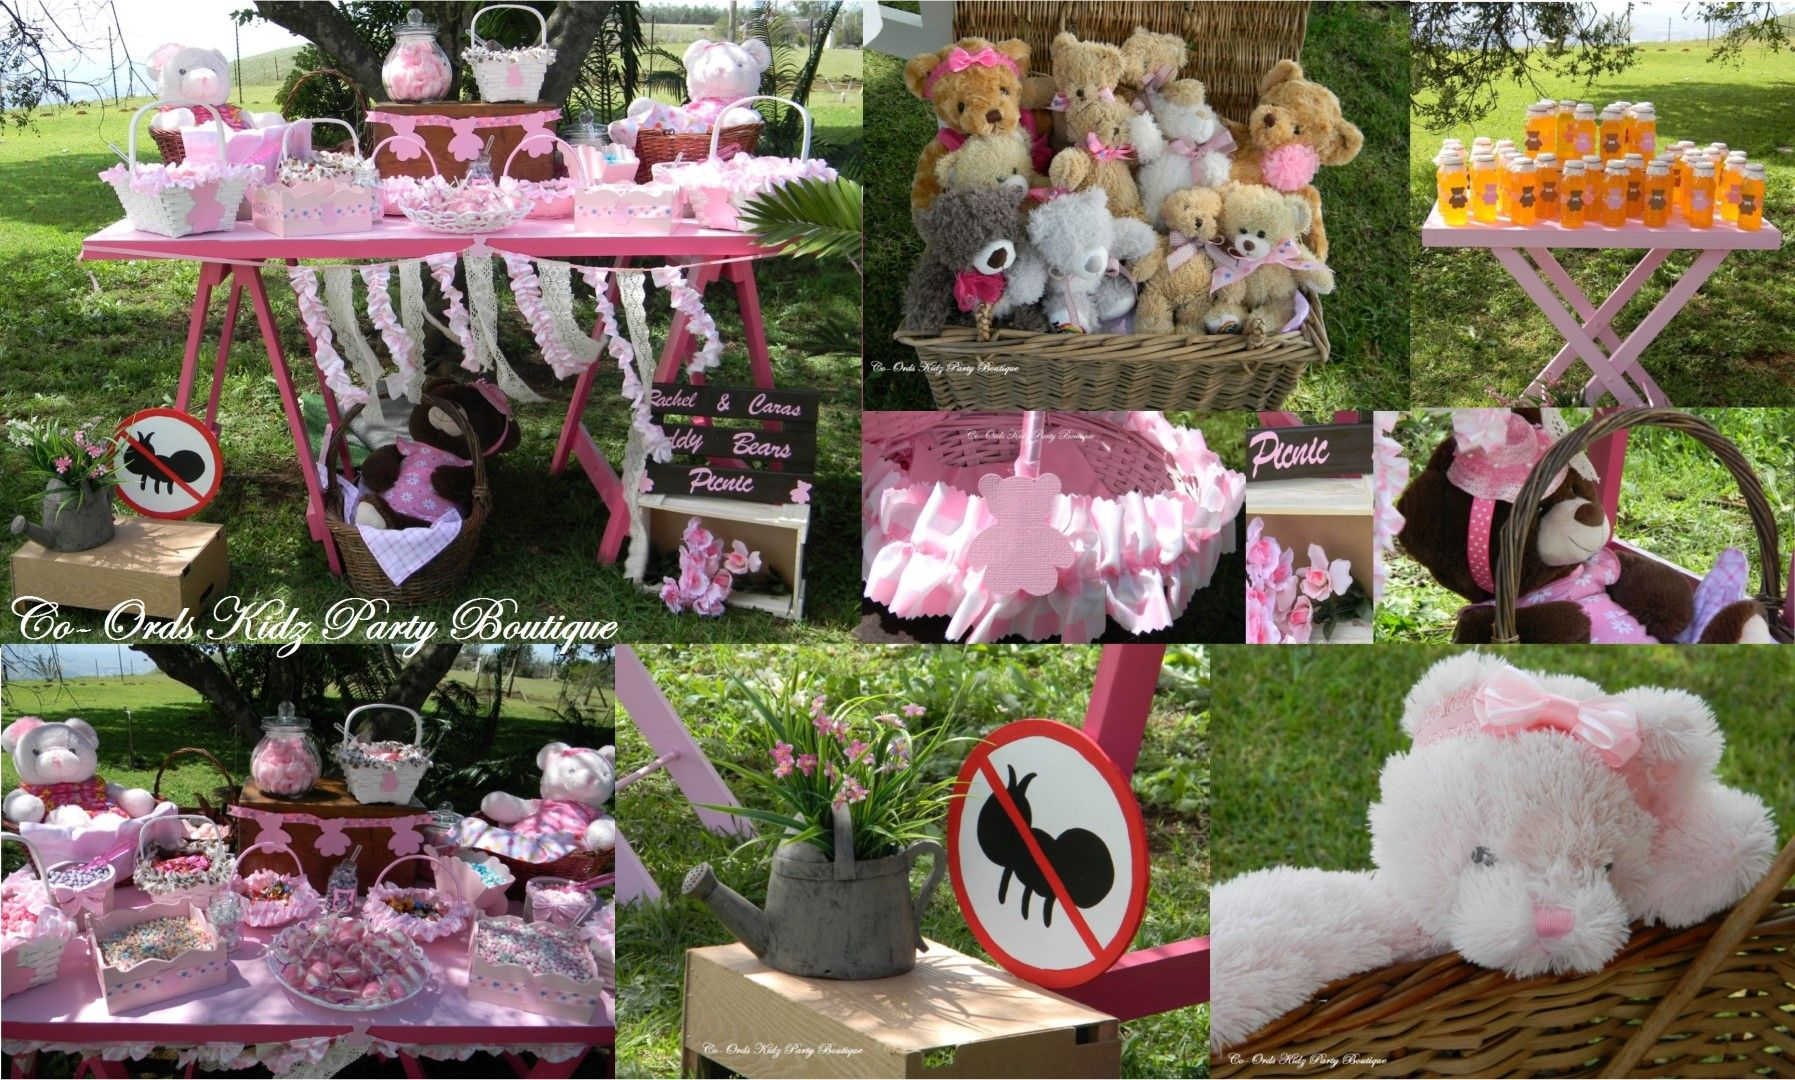 Teddy Bears Picnic in the Park by Co-Ords Kidz Party Boutique